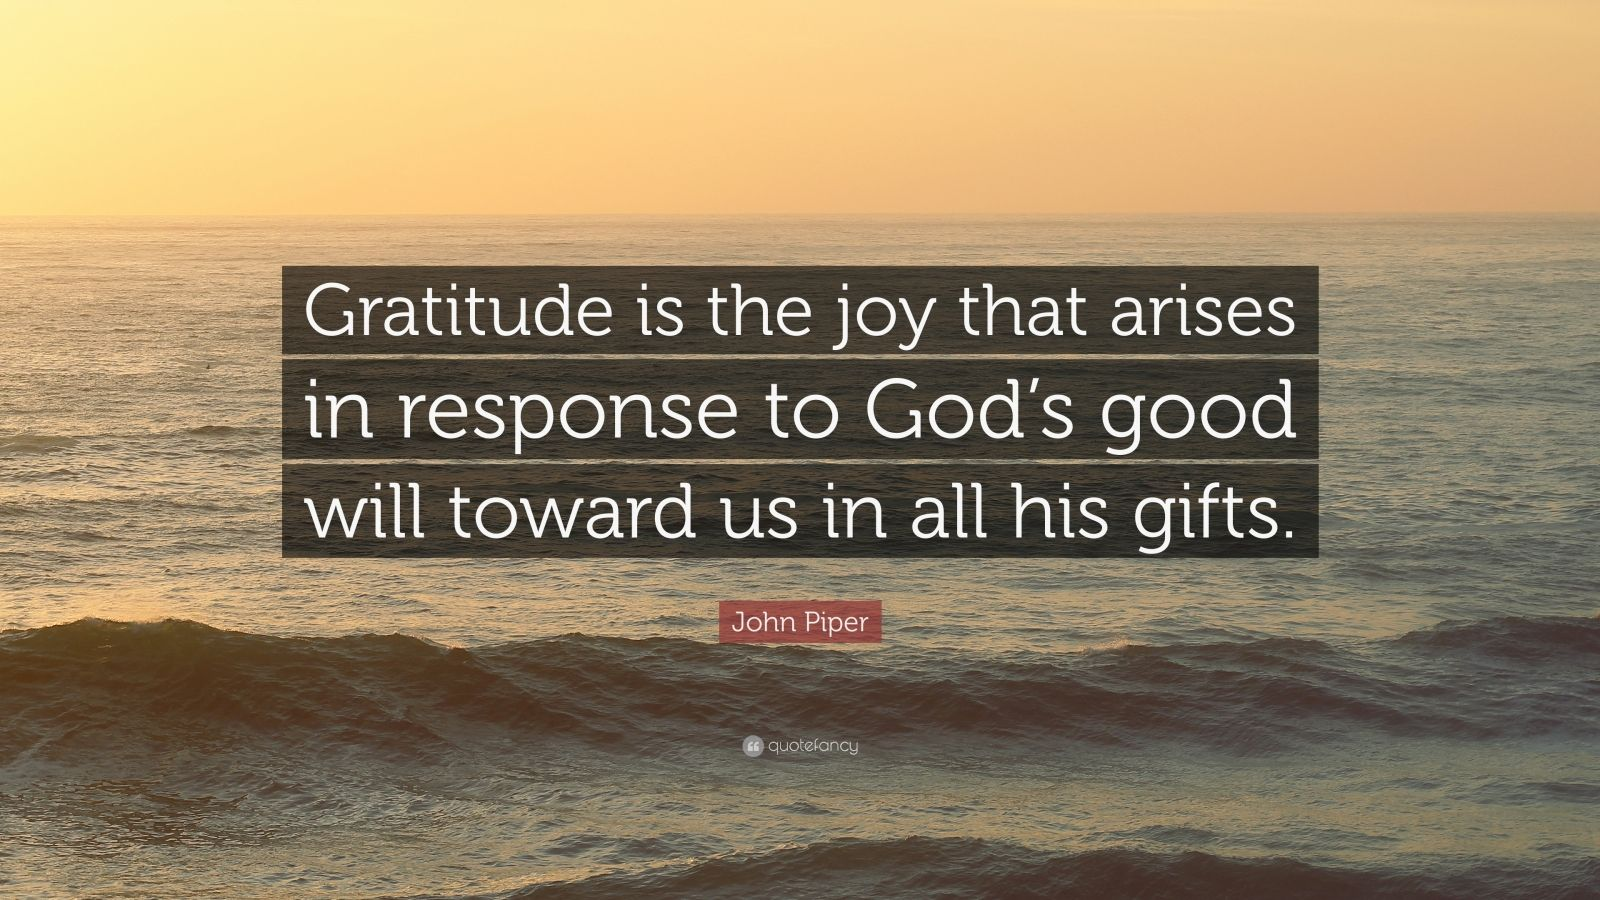 """John Piper Quote: """"Gratitude is the joy that arises in response to God's good will toward us in all his gifts."""""""